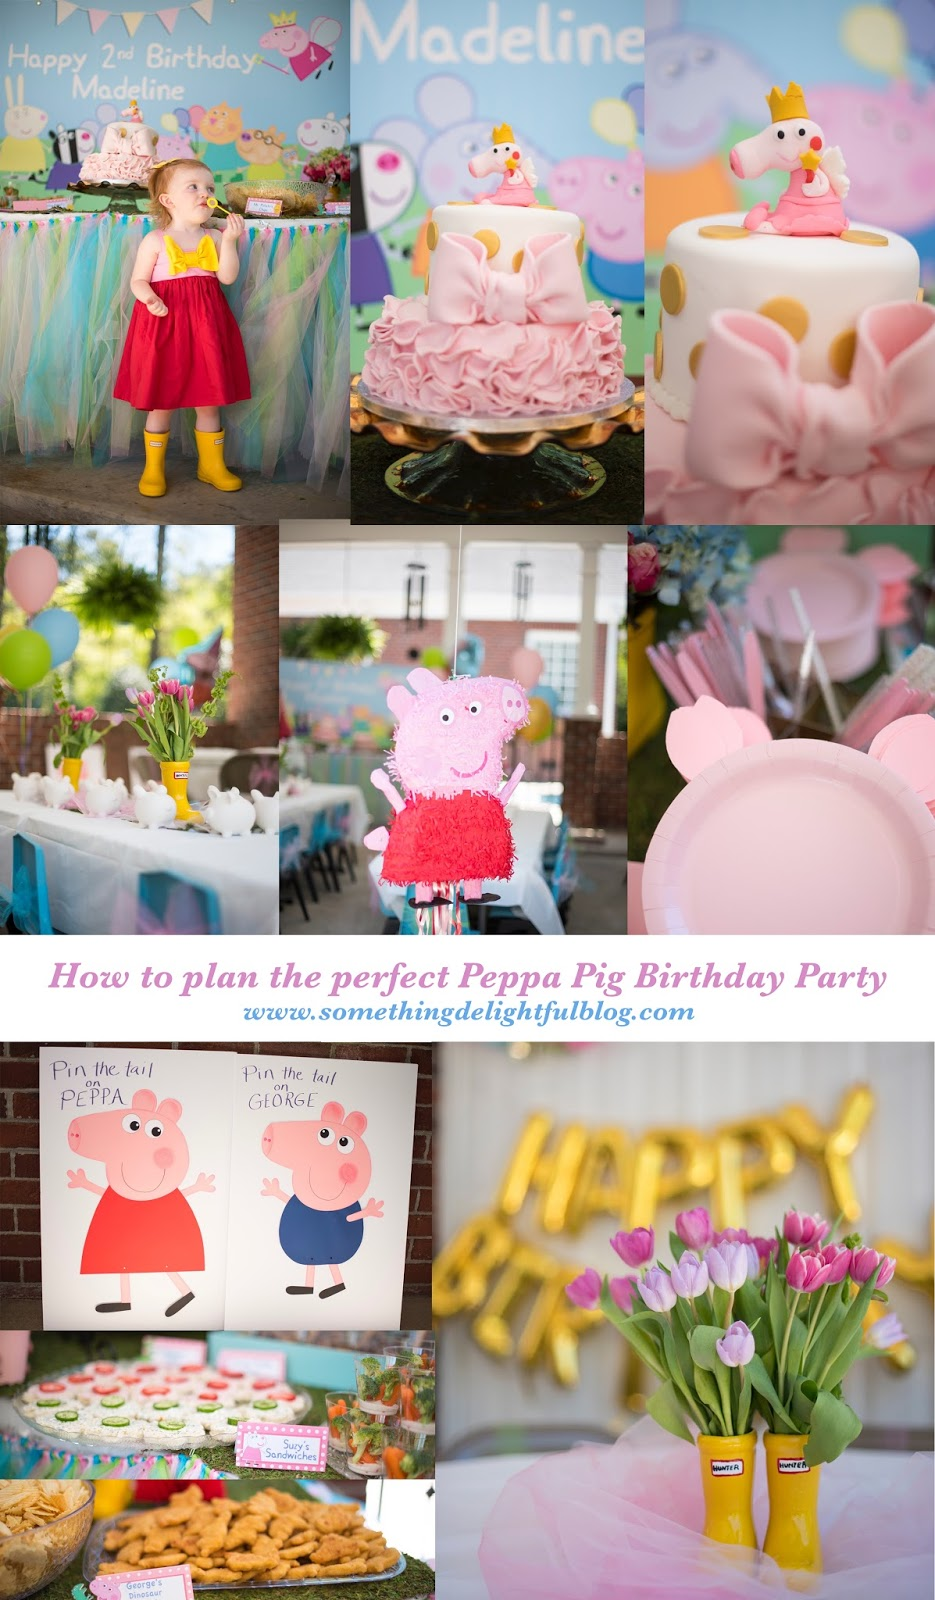 How to plan the perfect Peppa Pig birthday party - Something Delightful Blog